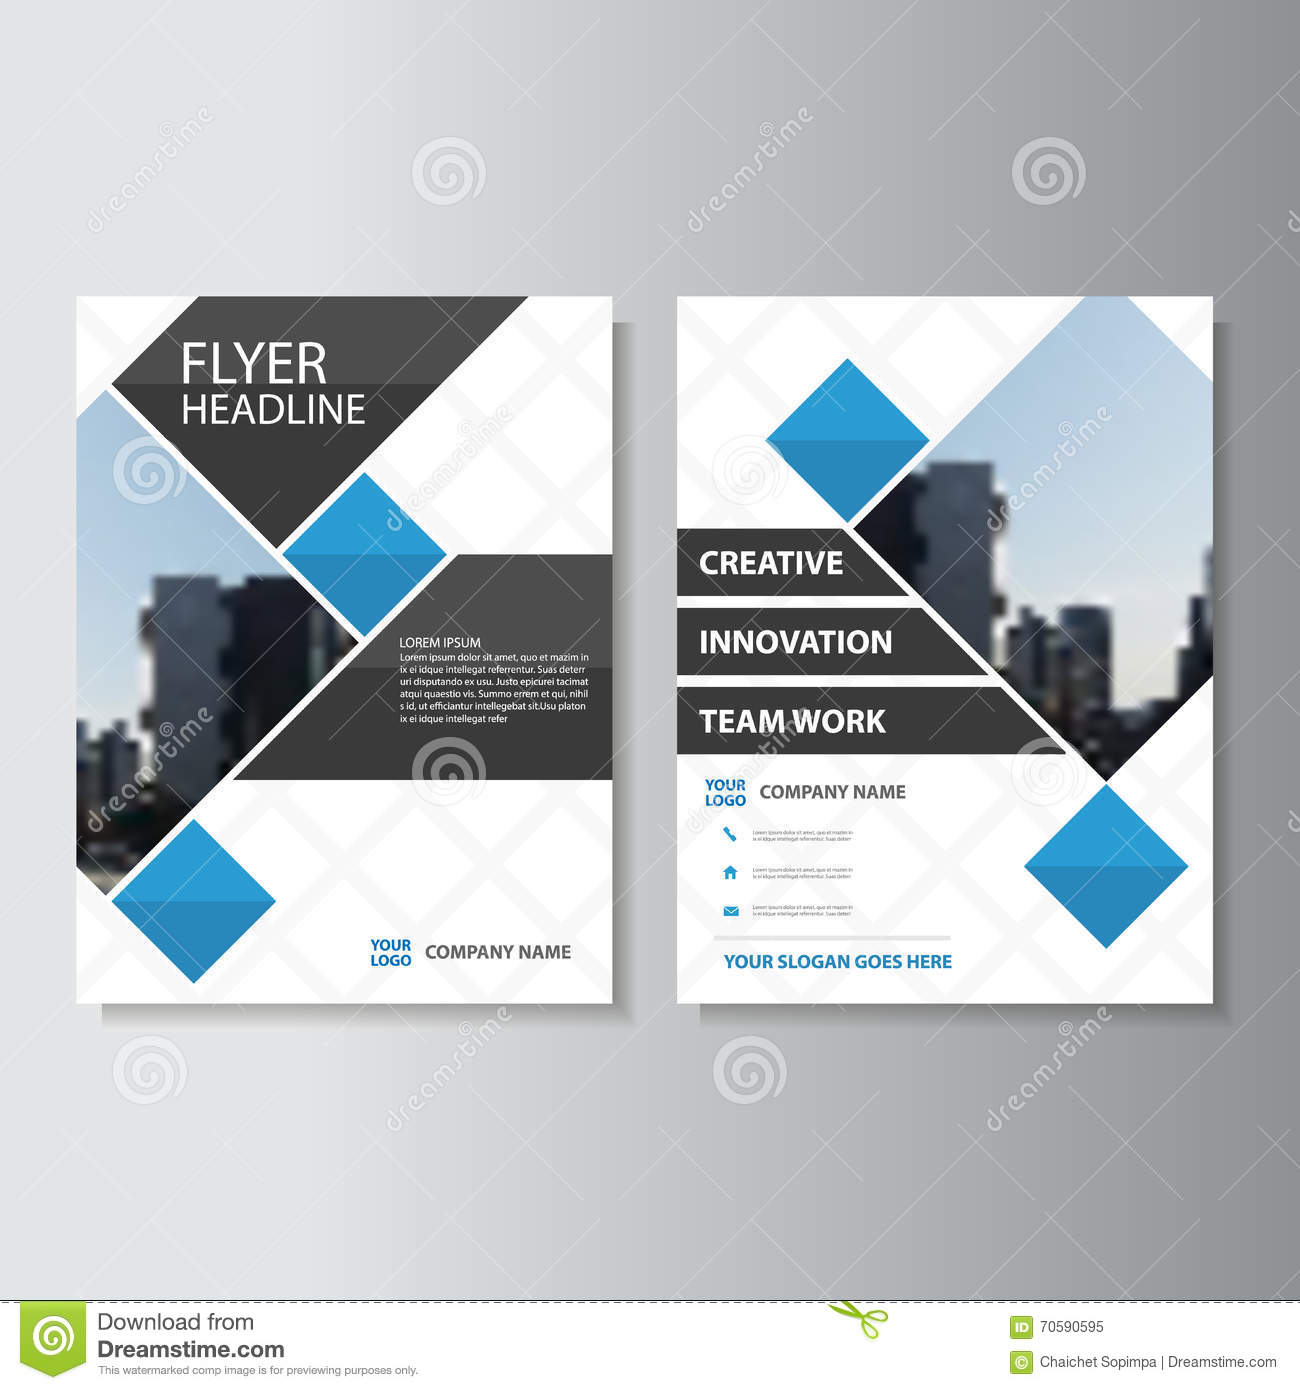 Book Cover Template Powerpoint : Powerpoint diagram timeline template